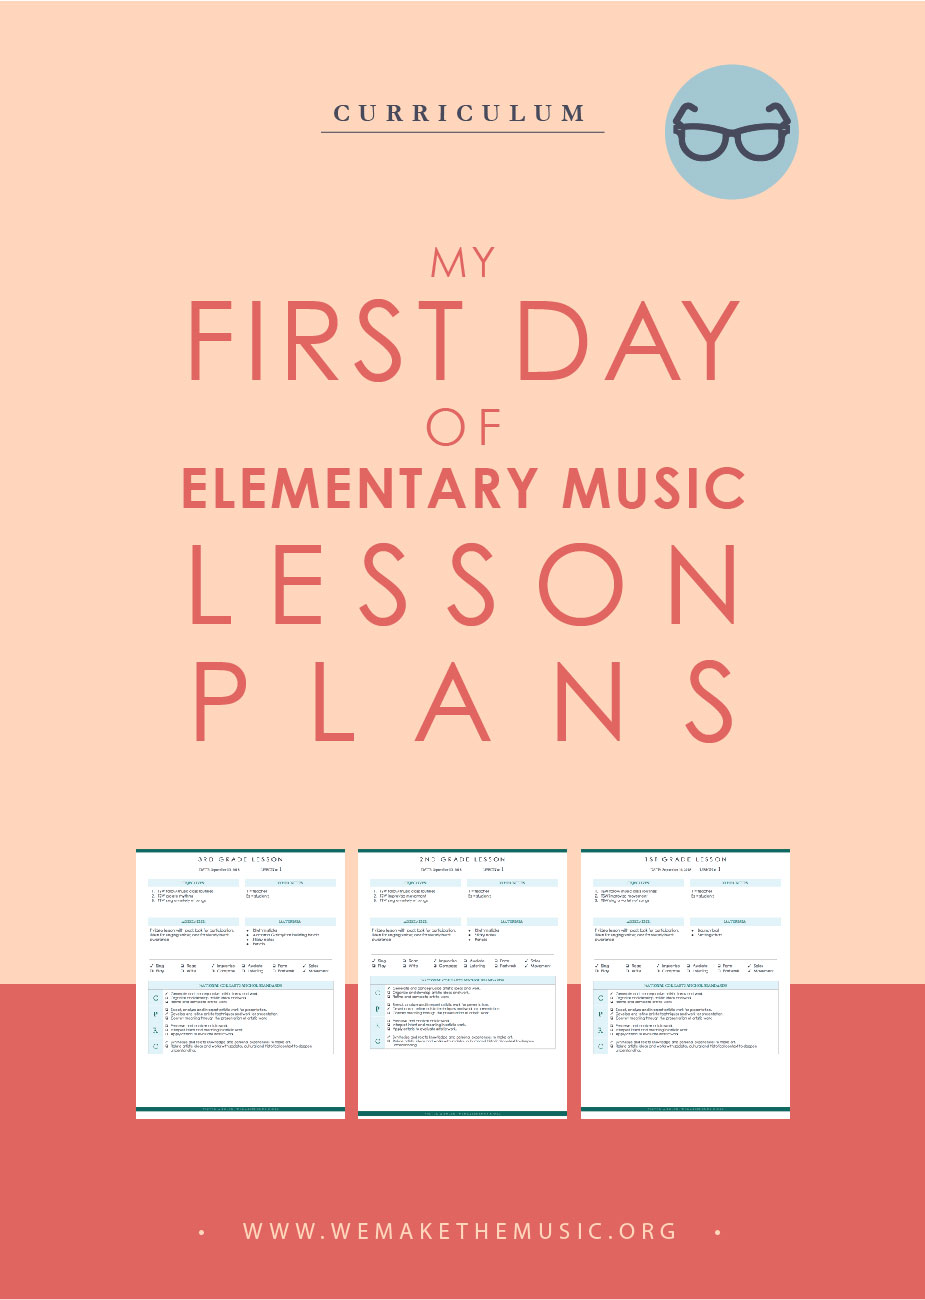 My First Day of Elementary Music Lesson Plans — Victoria Boler [ 1054 x 750 Pixel ]